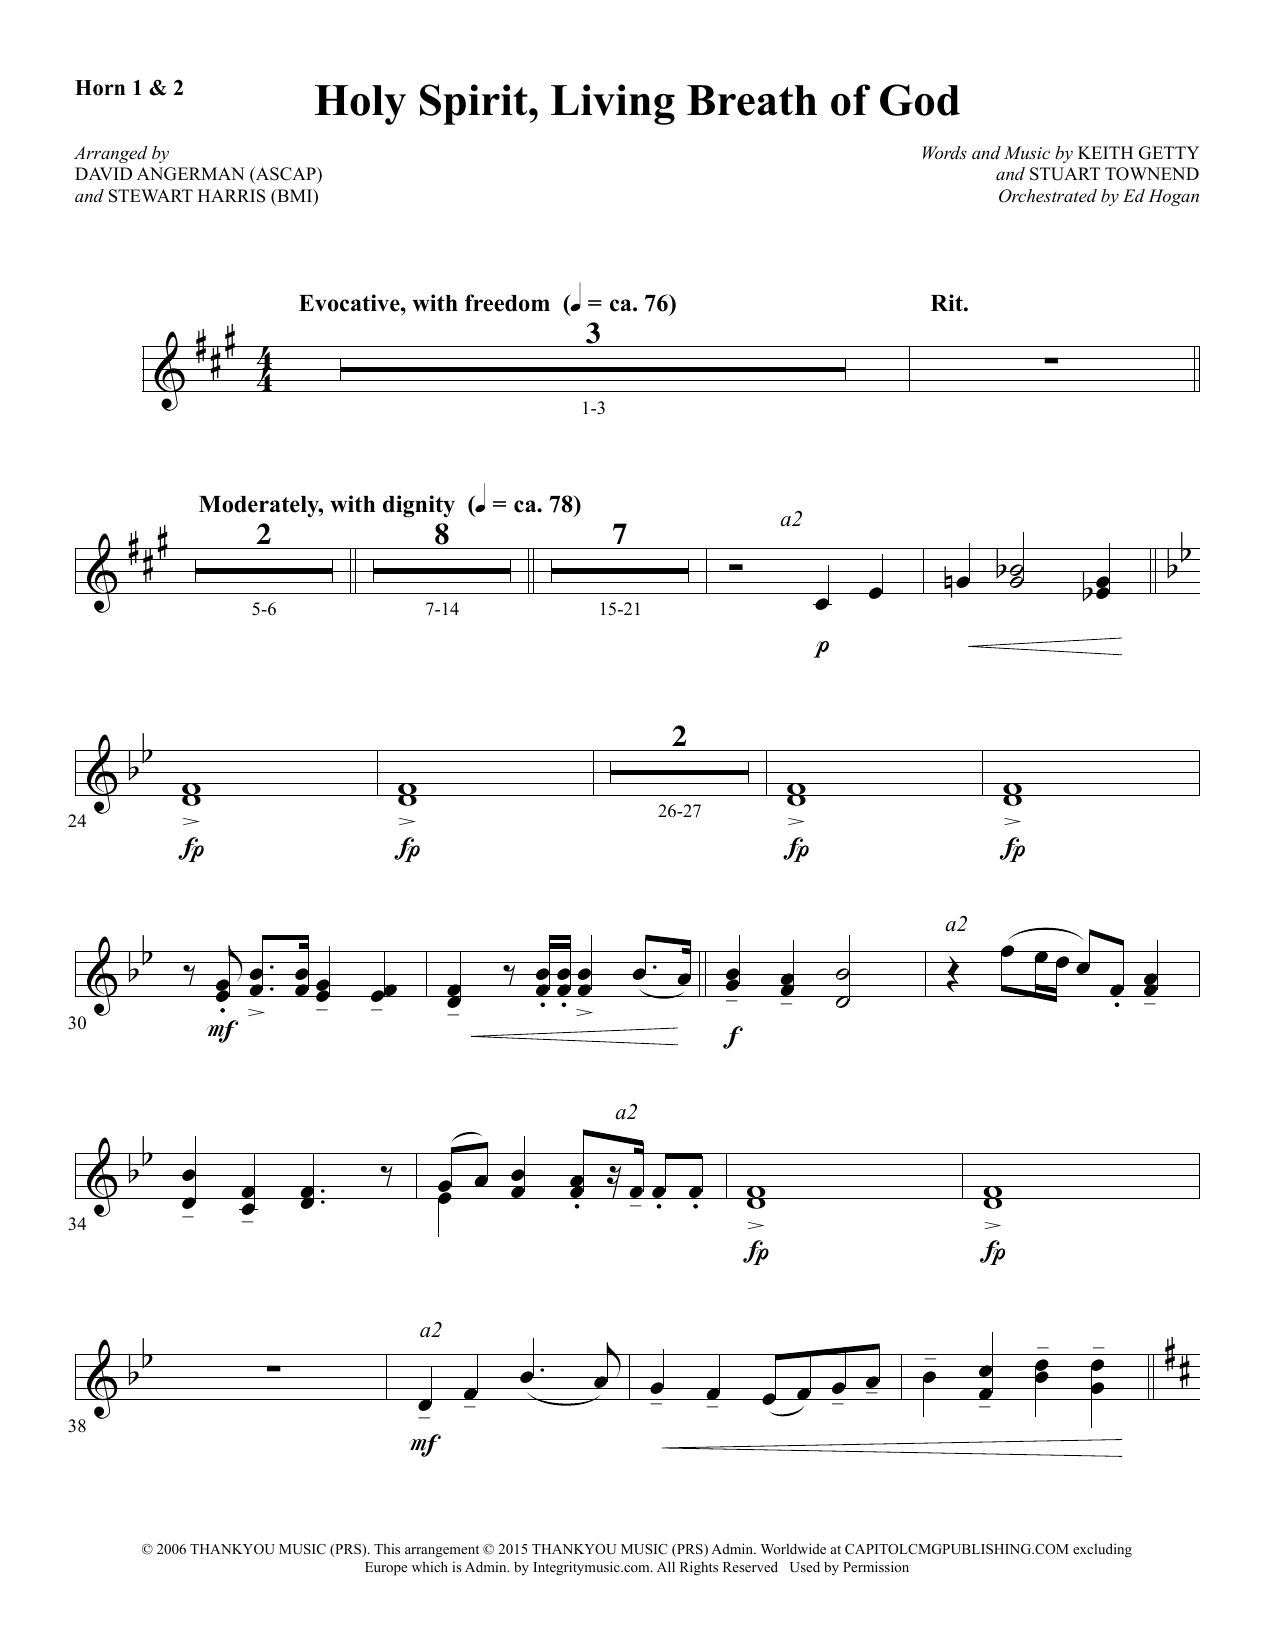 Holy Spirit, Living Breath of God - F Horn 1 & 2 Sheet Music